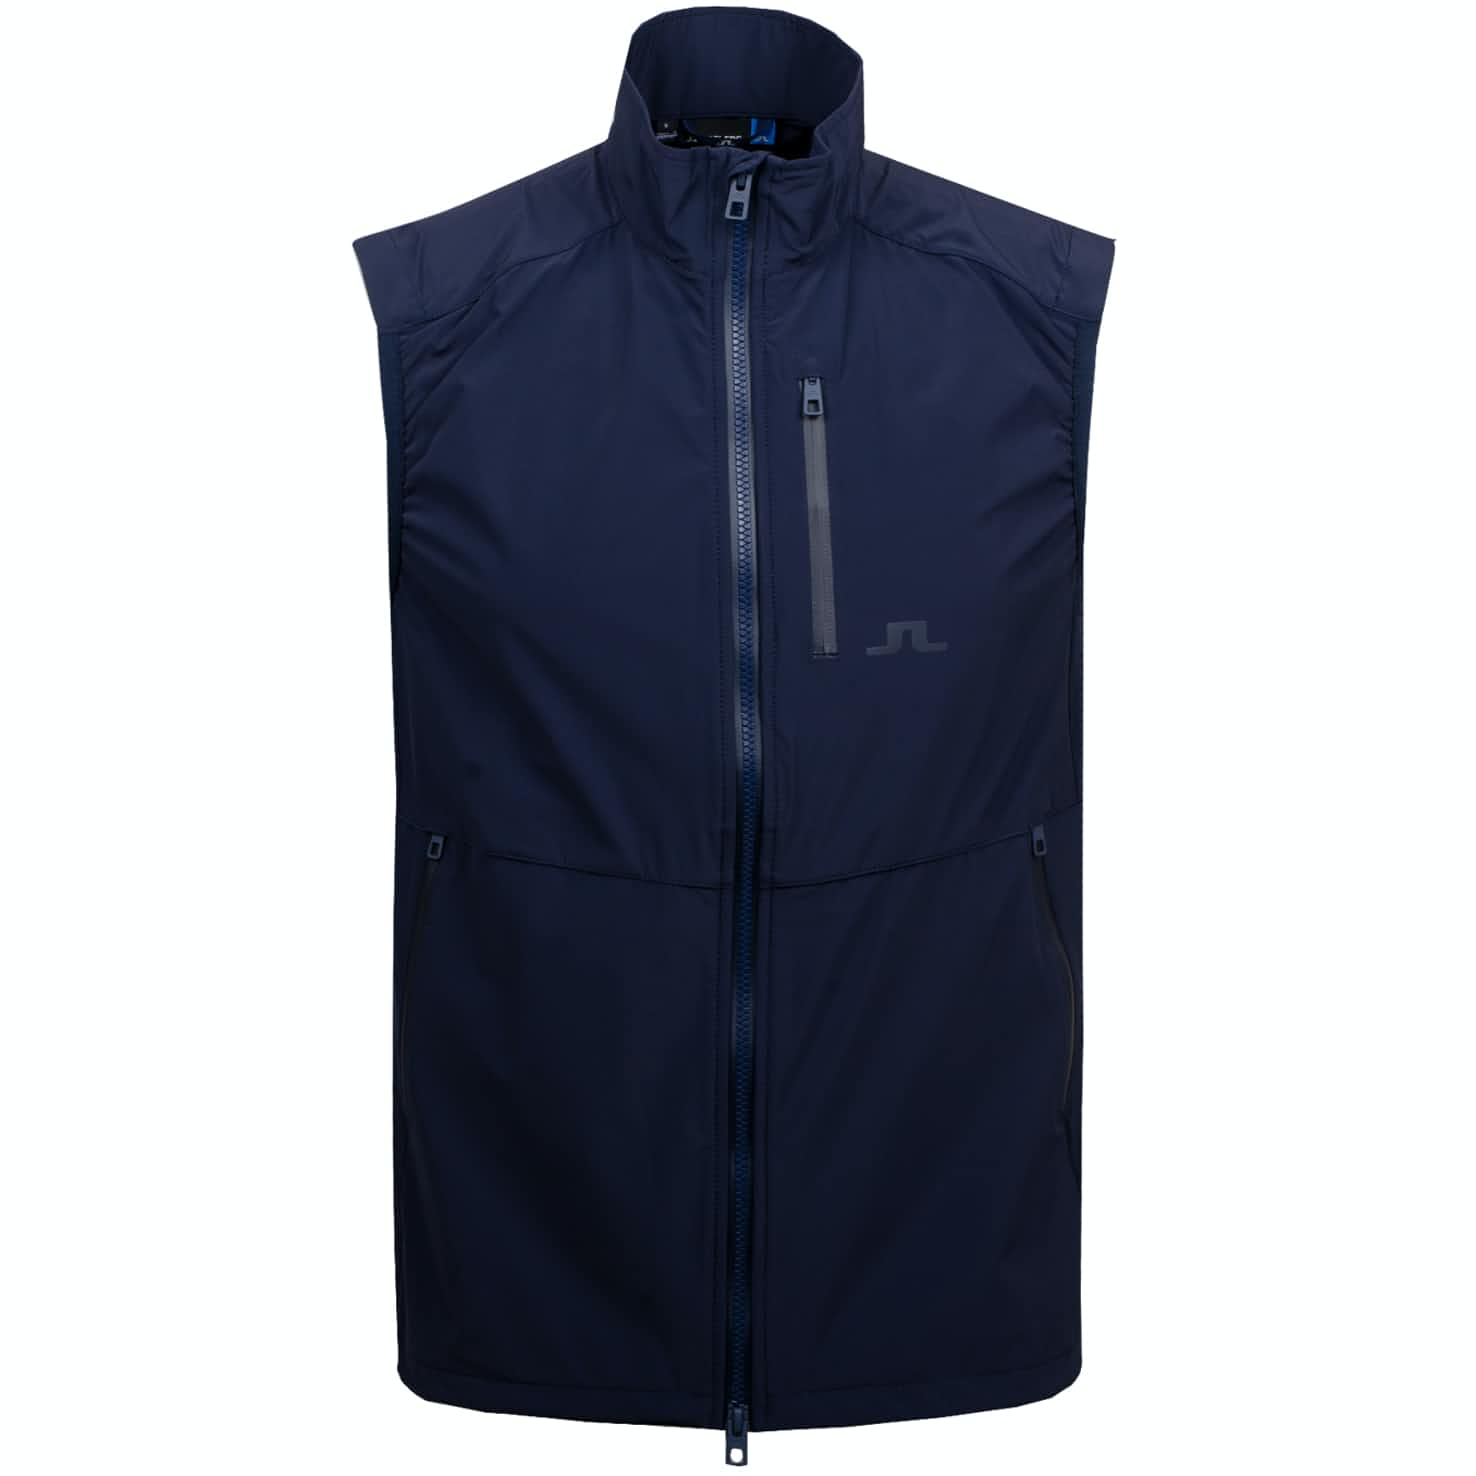 Adapt Performance Vest Lux Softshell JL Navy - SS19